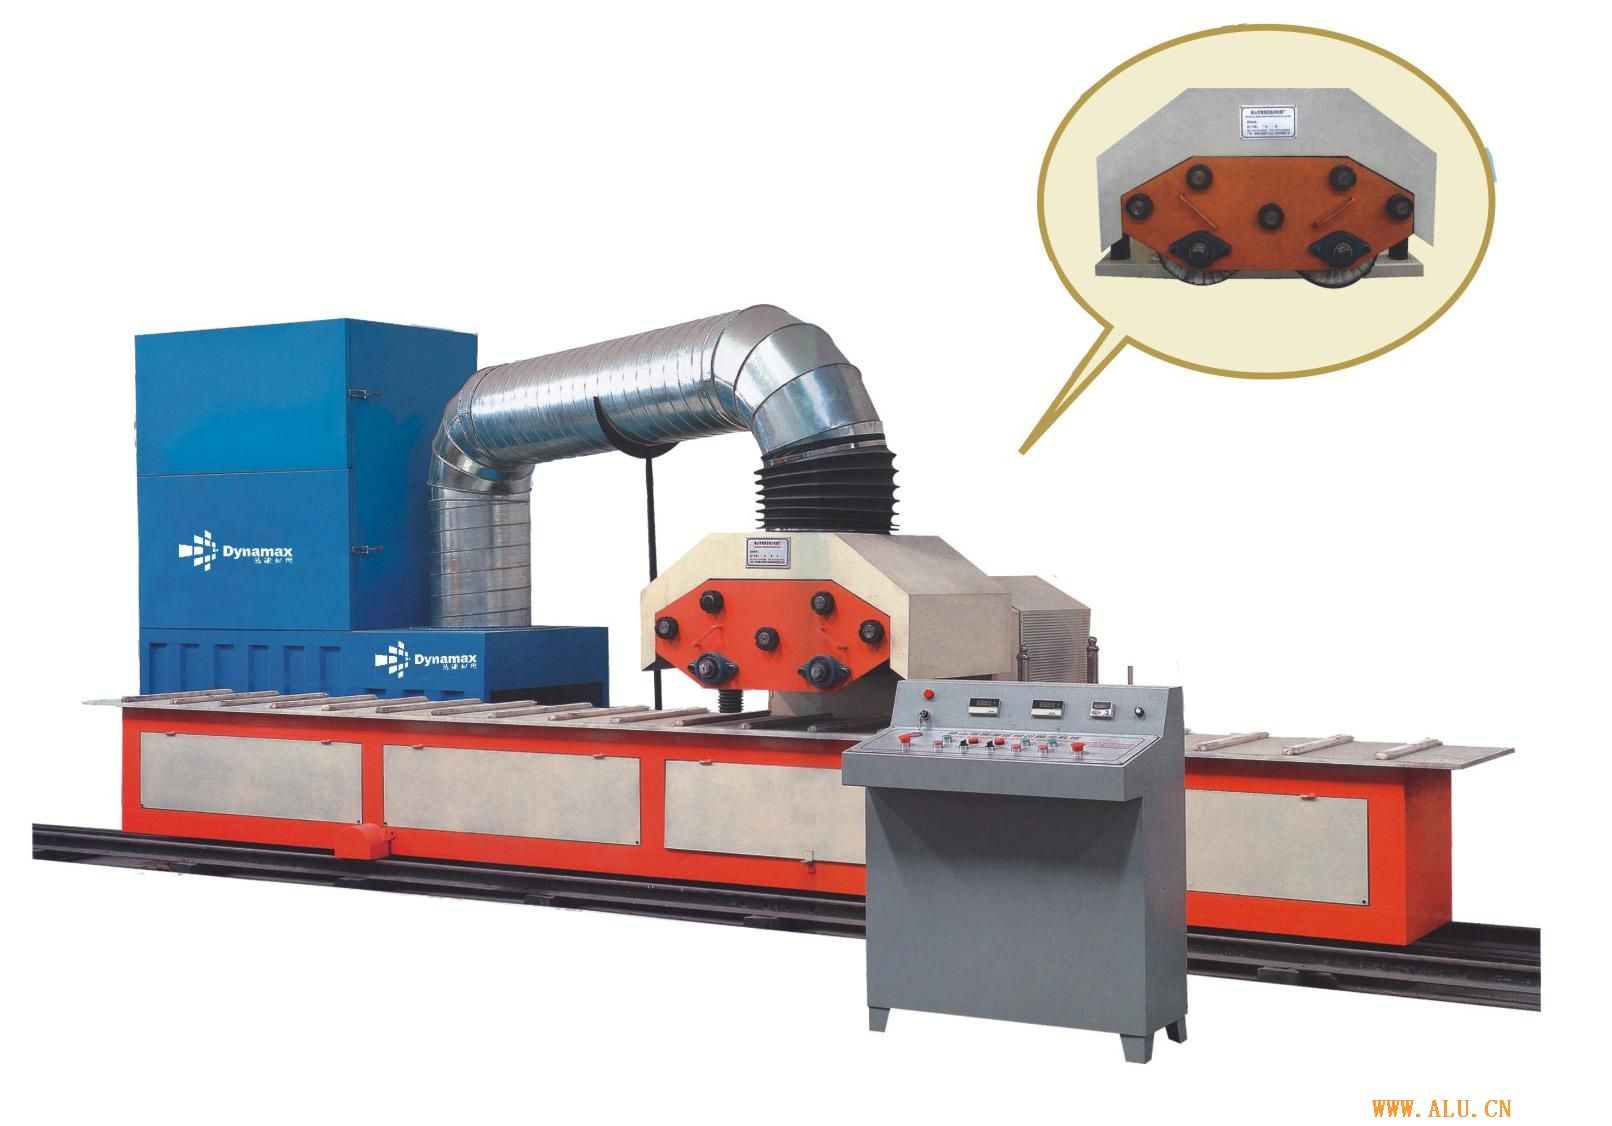 Polishing machine of aluminium profile